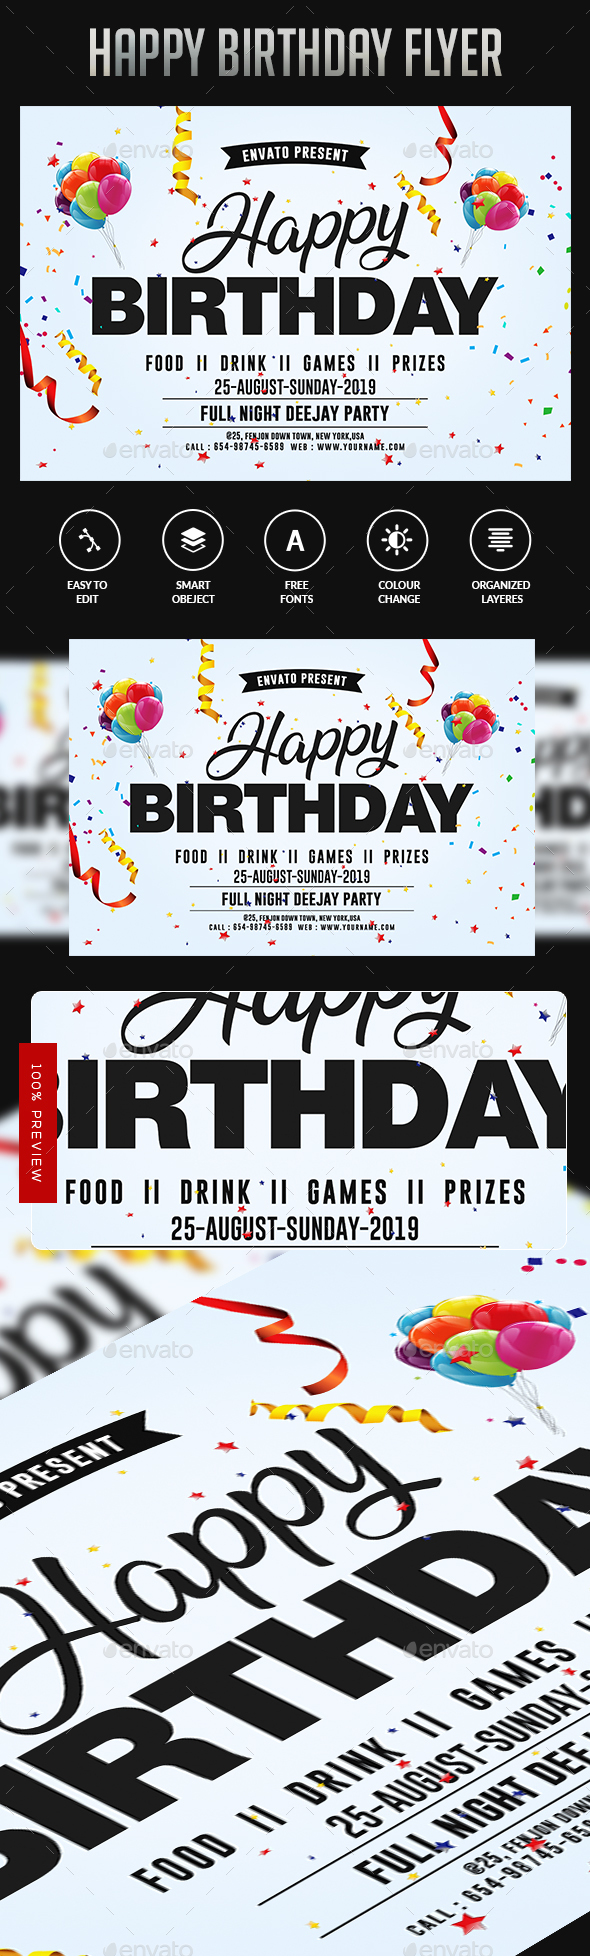 Flyers PSD – Birthday Flyer – Download